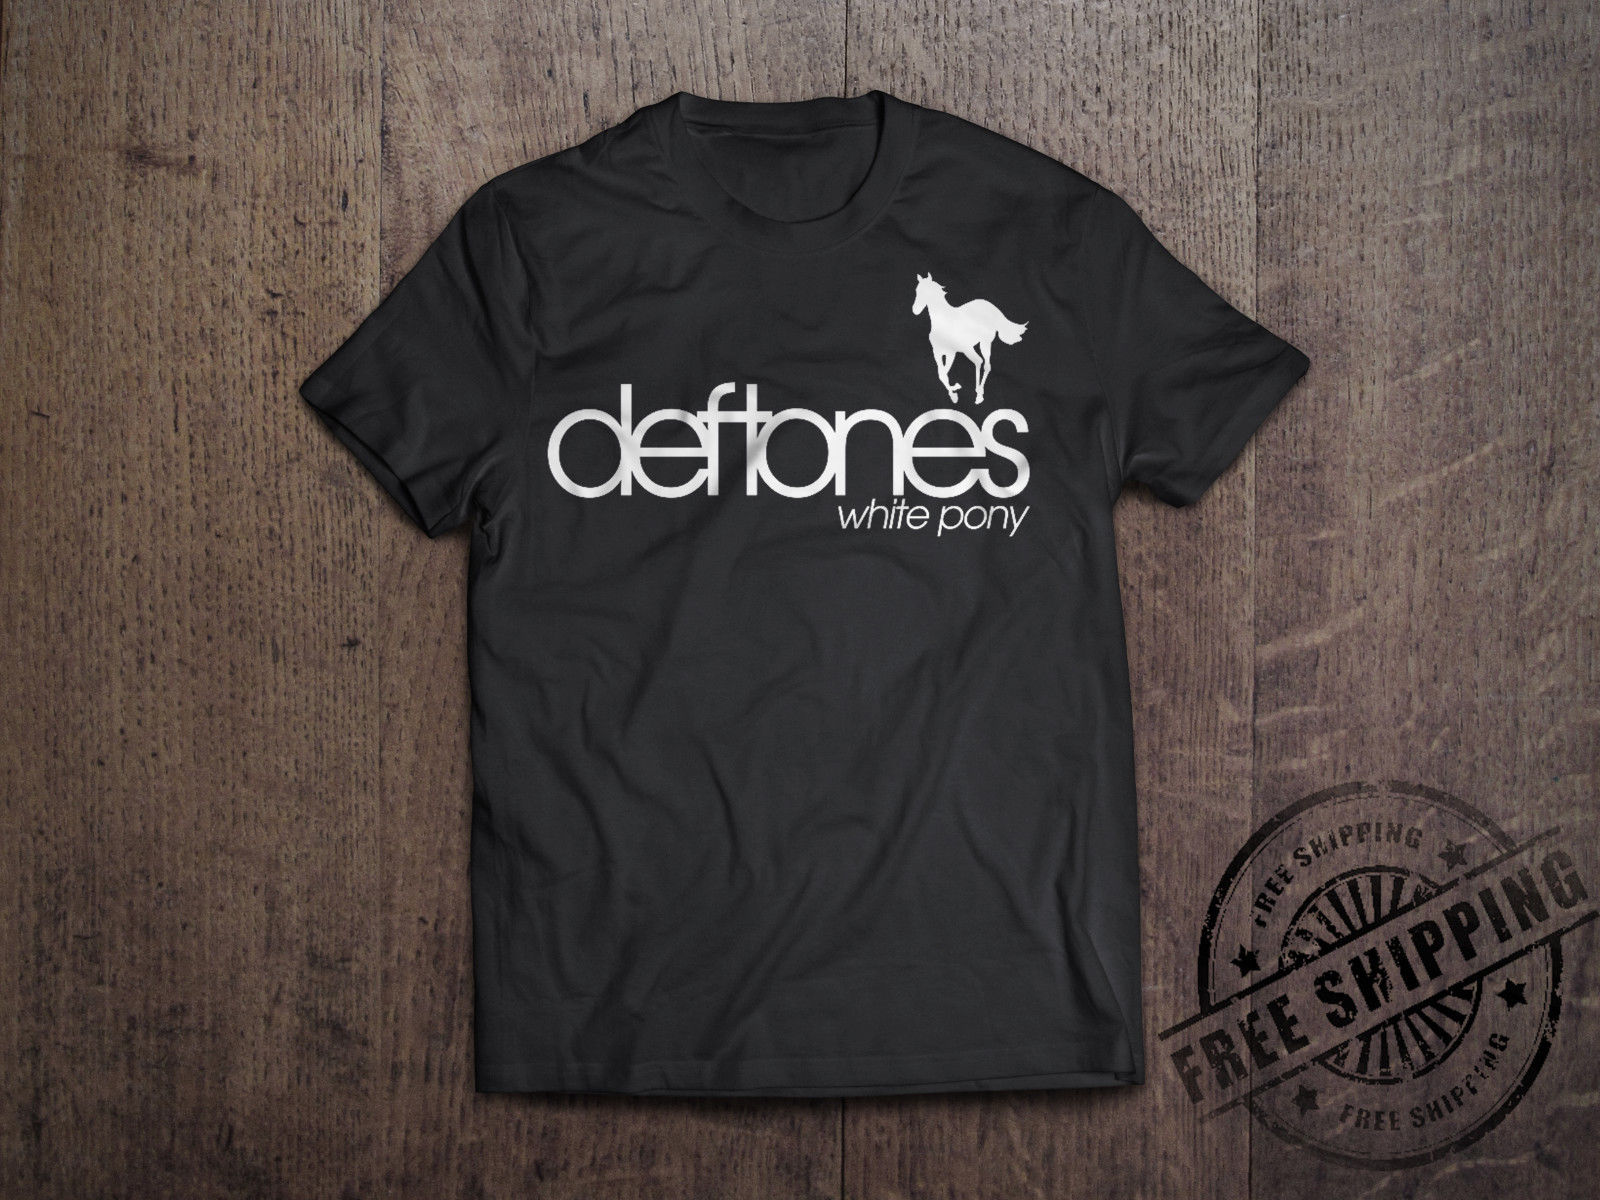 Deftones T-Shirt Hard Rock Band Classical Metal Music America Rock Band image